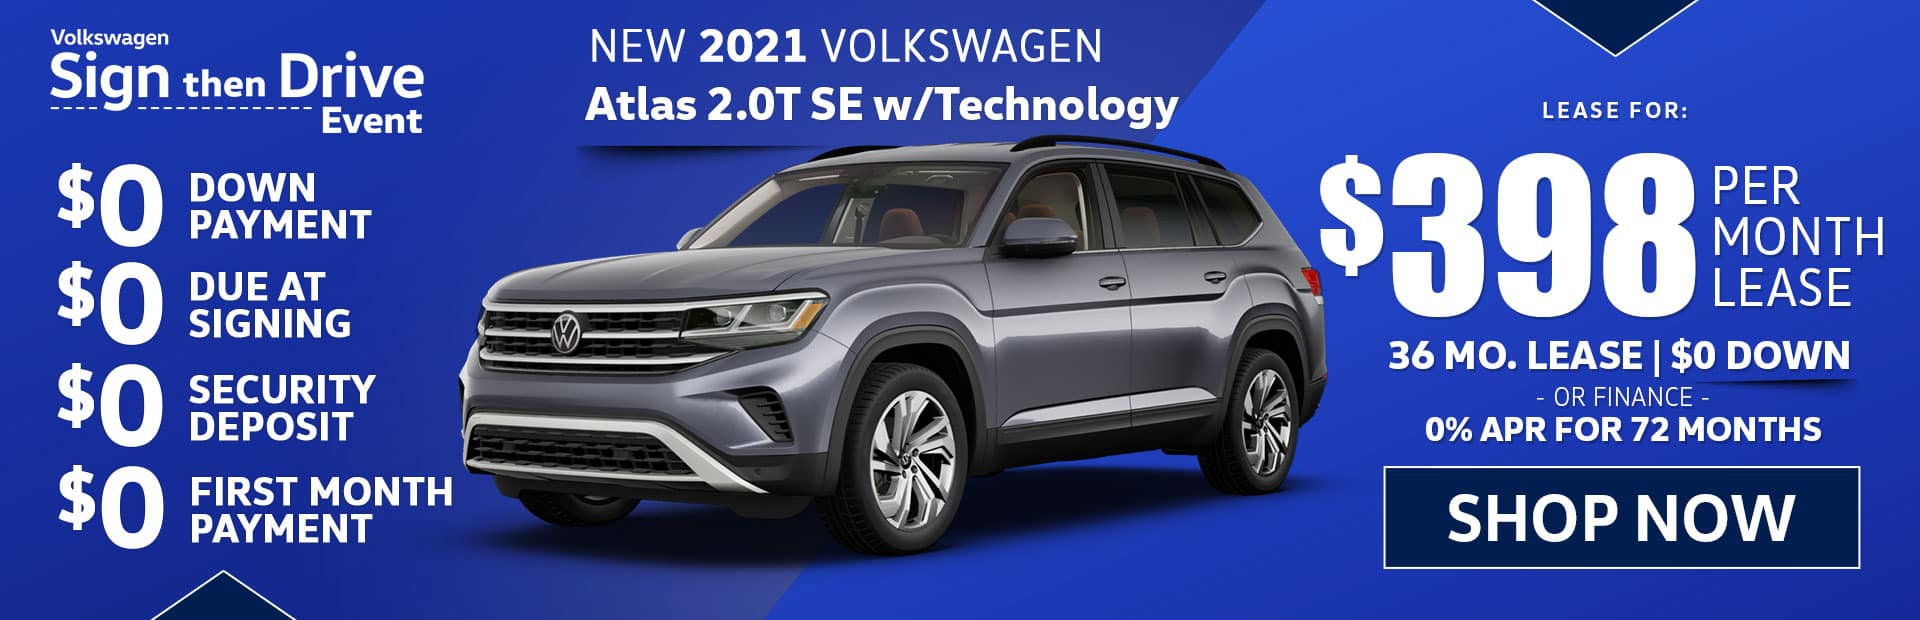 new 2021 vw atlas se lease special in los angeles california